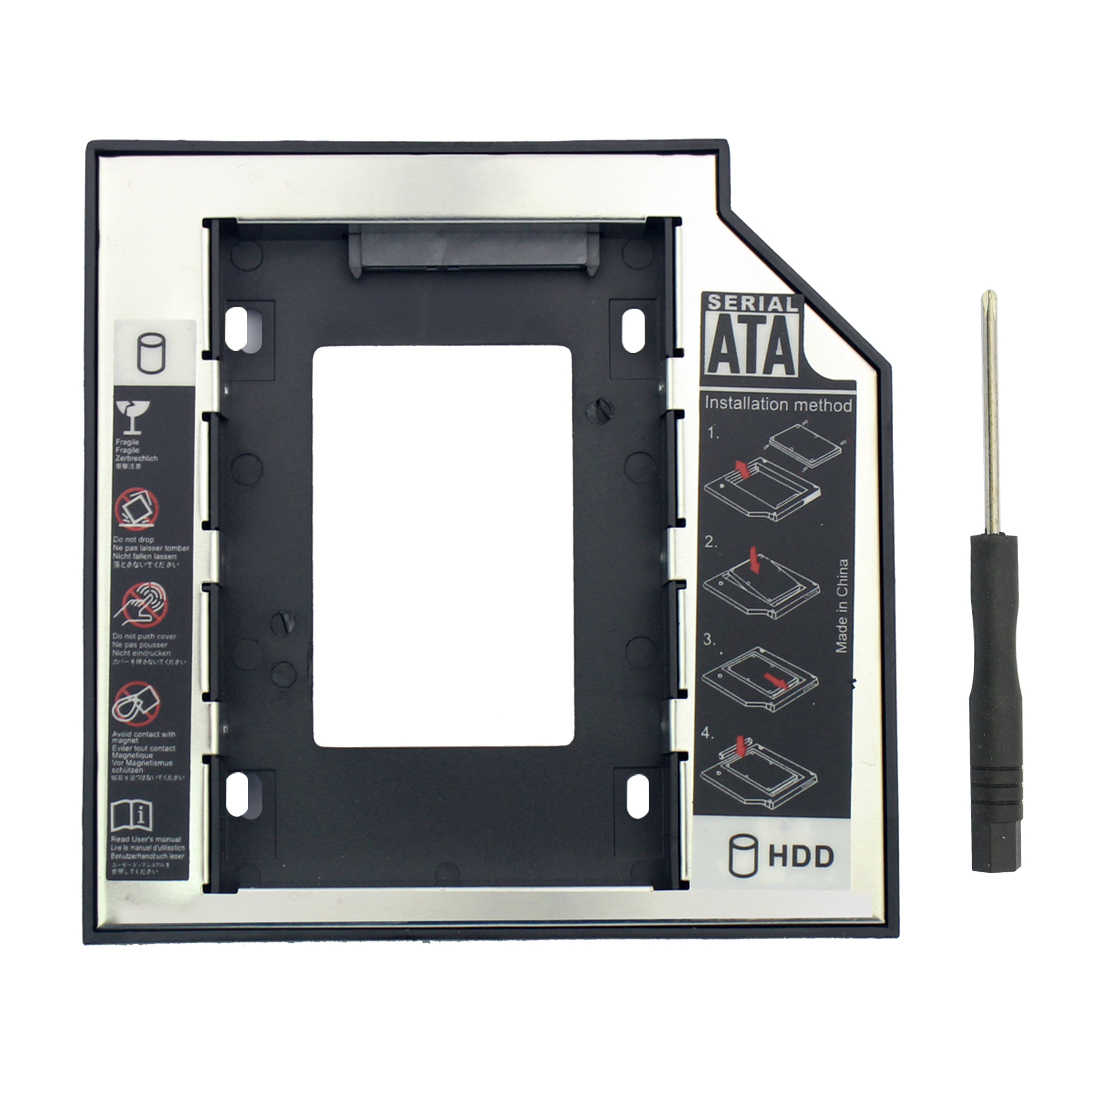 34c494928ada 12.7m SSD Adapter SATA 3.0 HDD Hard Disk Drive CD-ROM Bracket 2.5